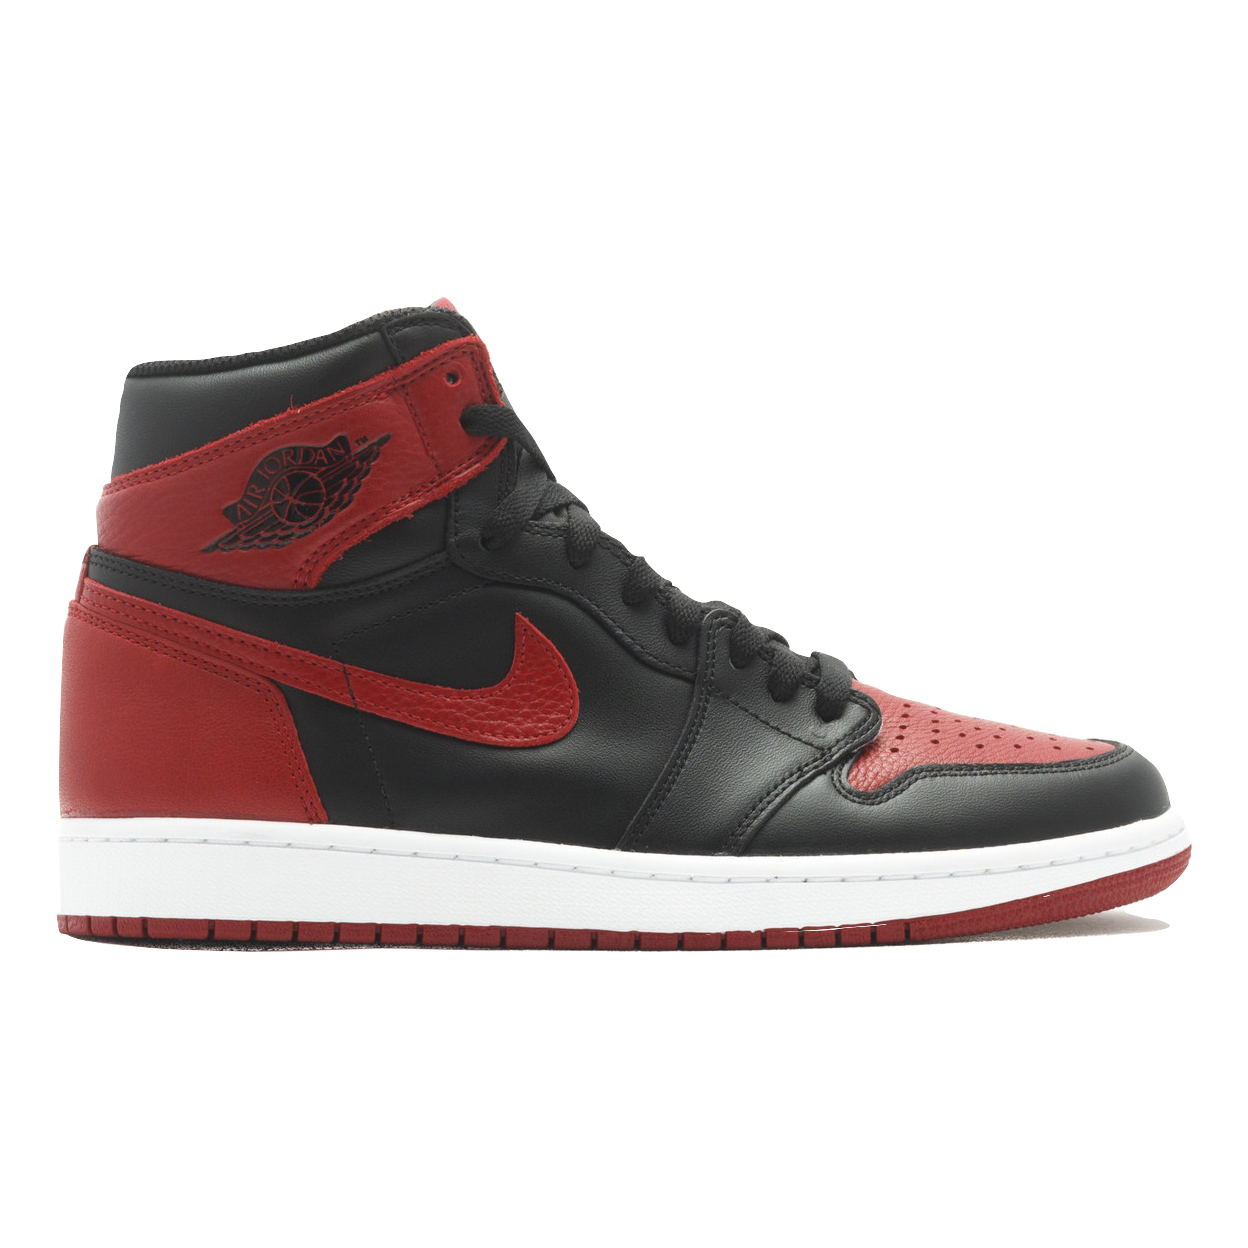 Air Jordan 1 Retro High OG - Banned/Bred 2016 - Used